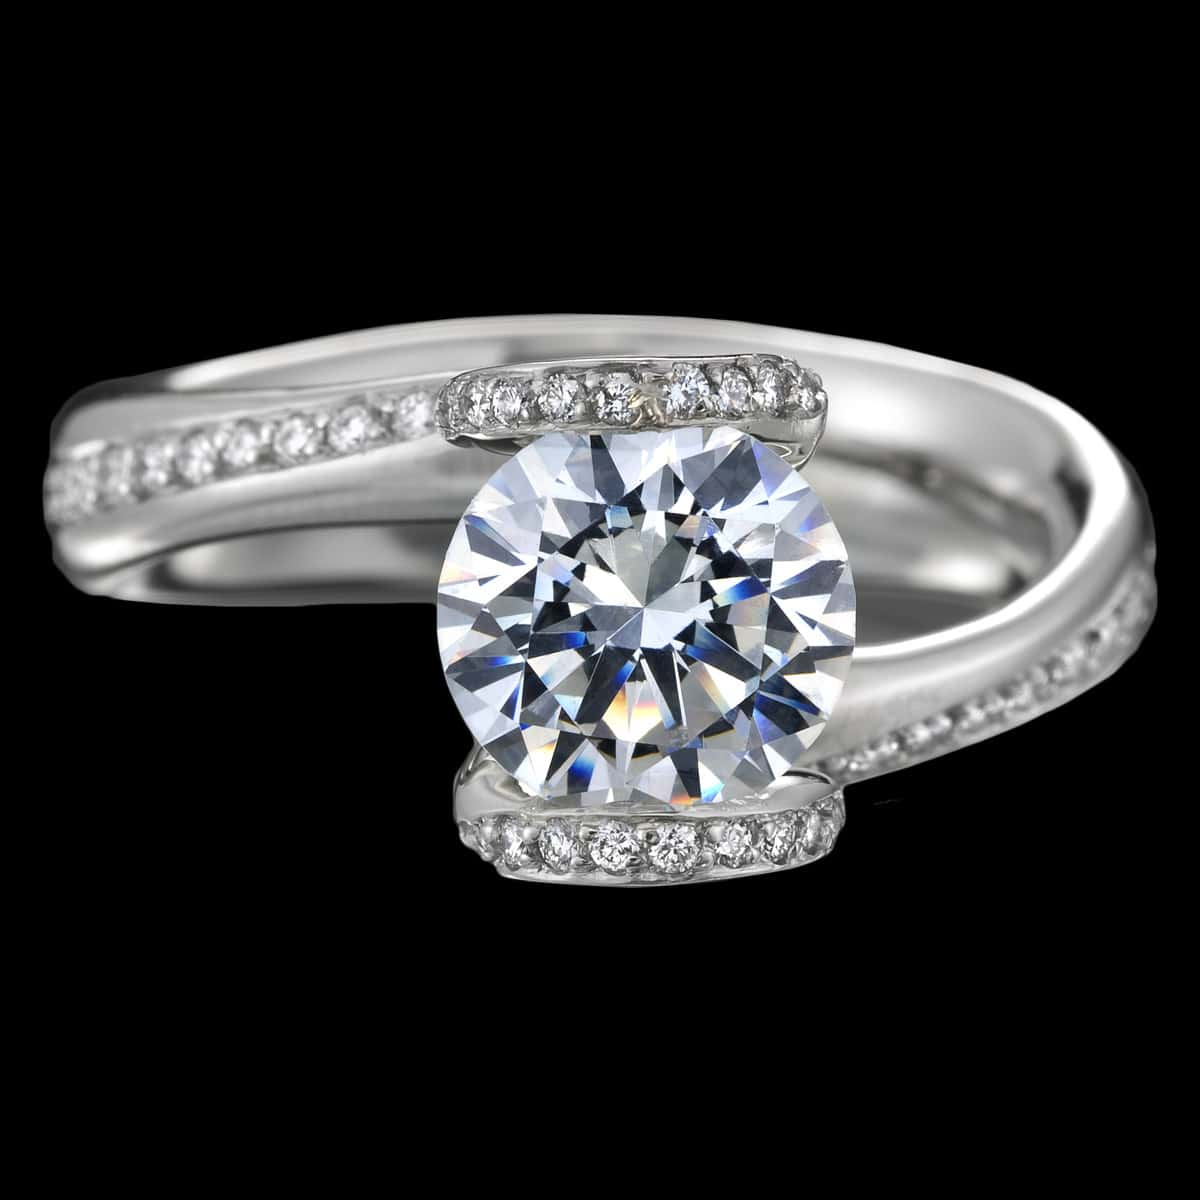 sonata diamond engagement ring top